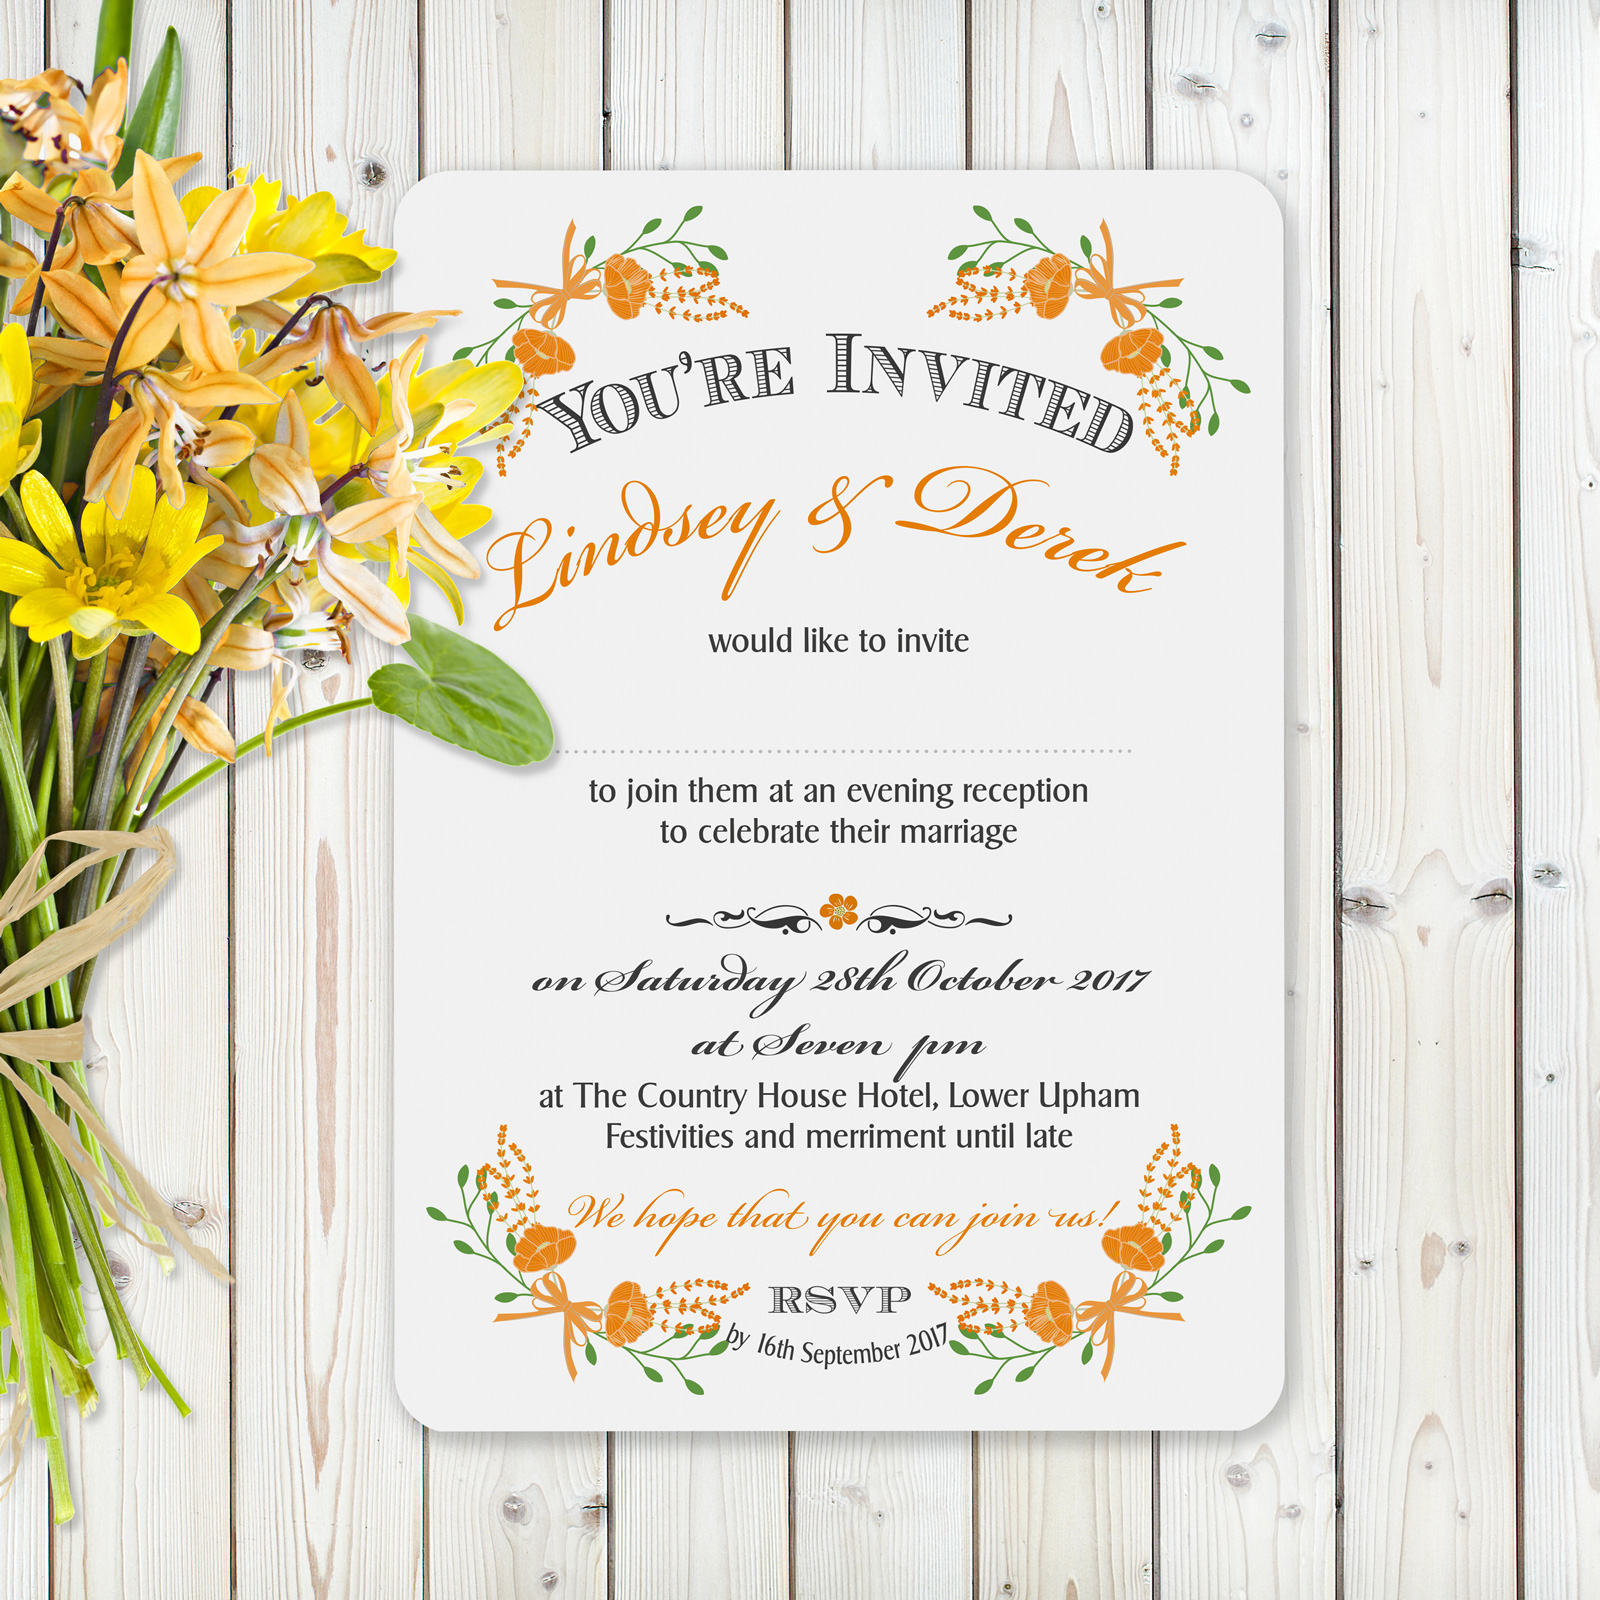 Floral Fantasy Orange on White Card - Evening Invitation